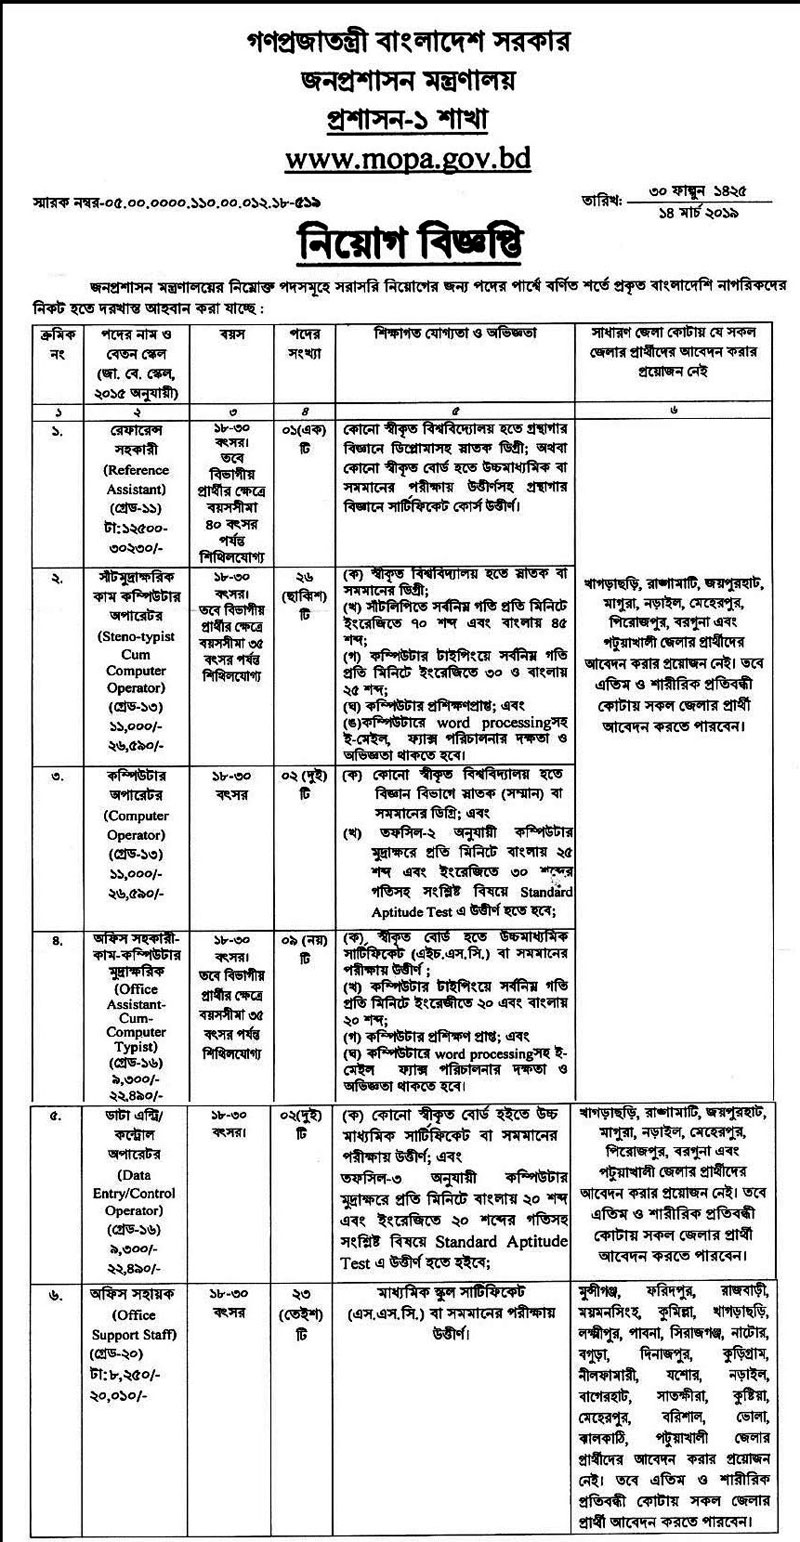 Public Administration Ministry Job 2019